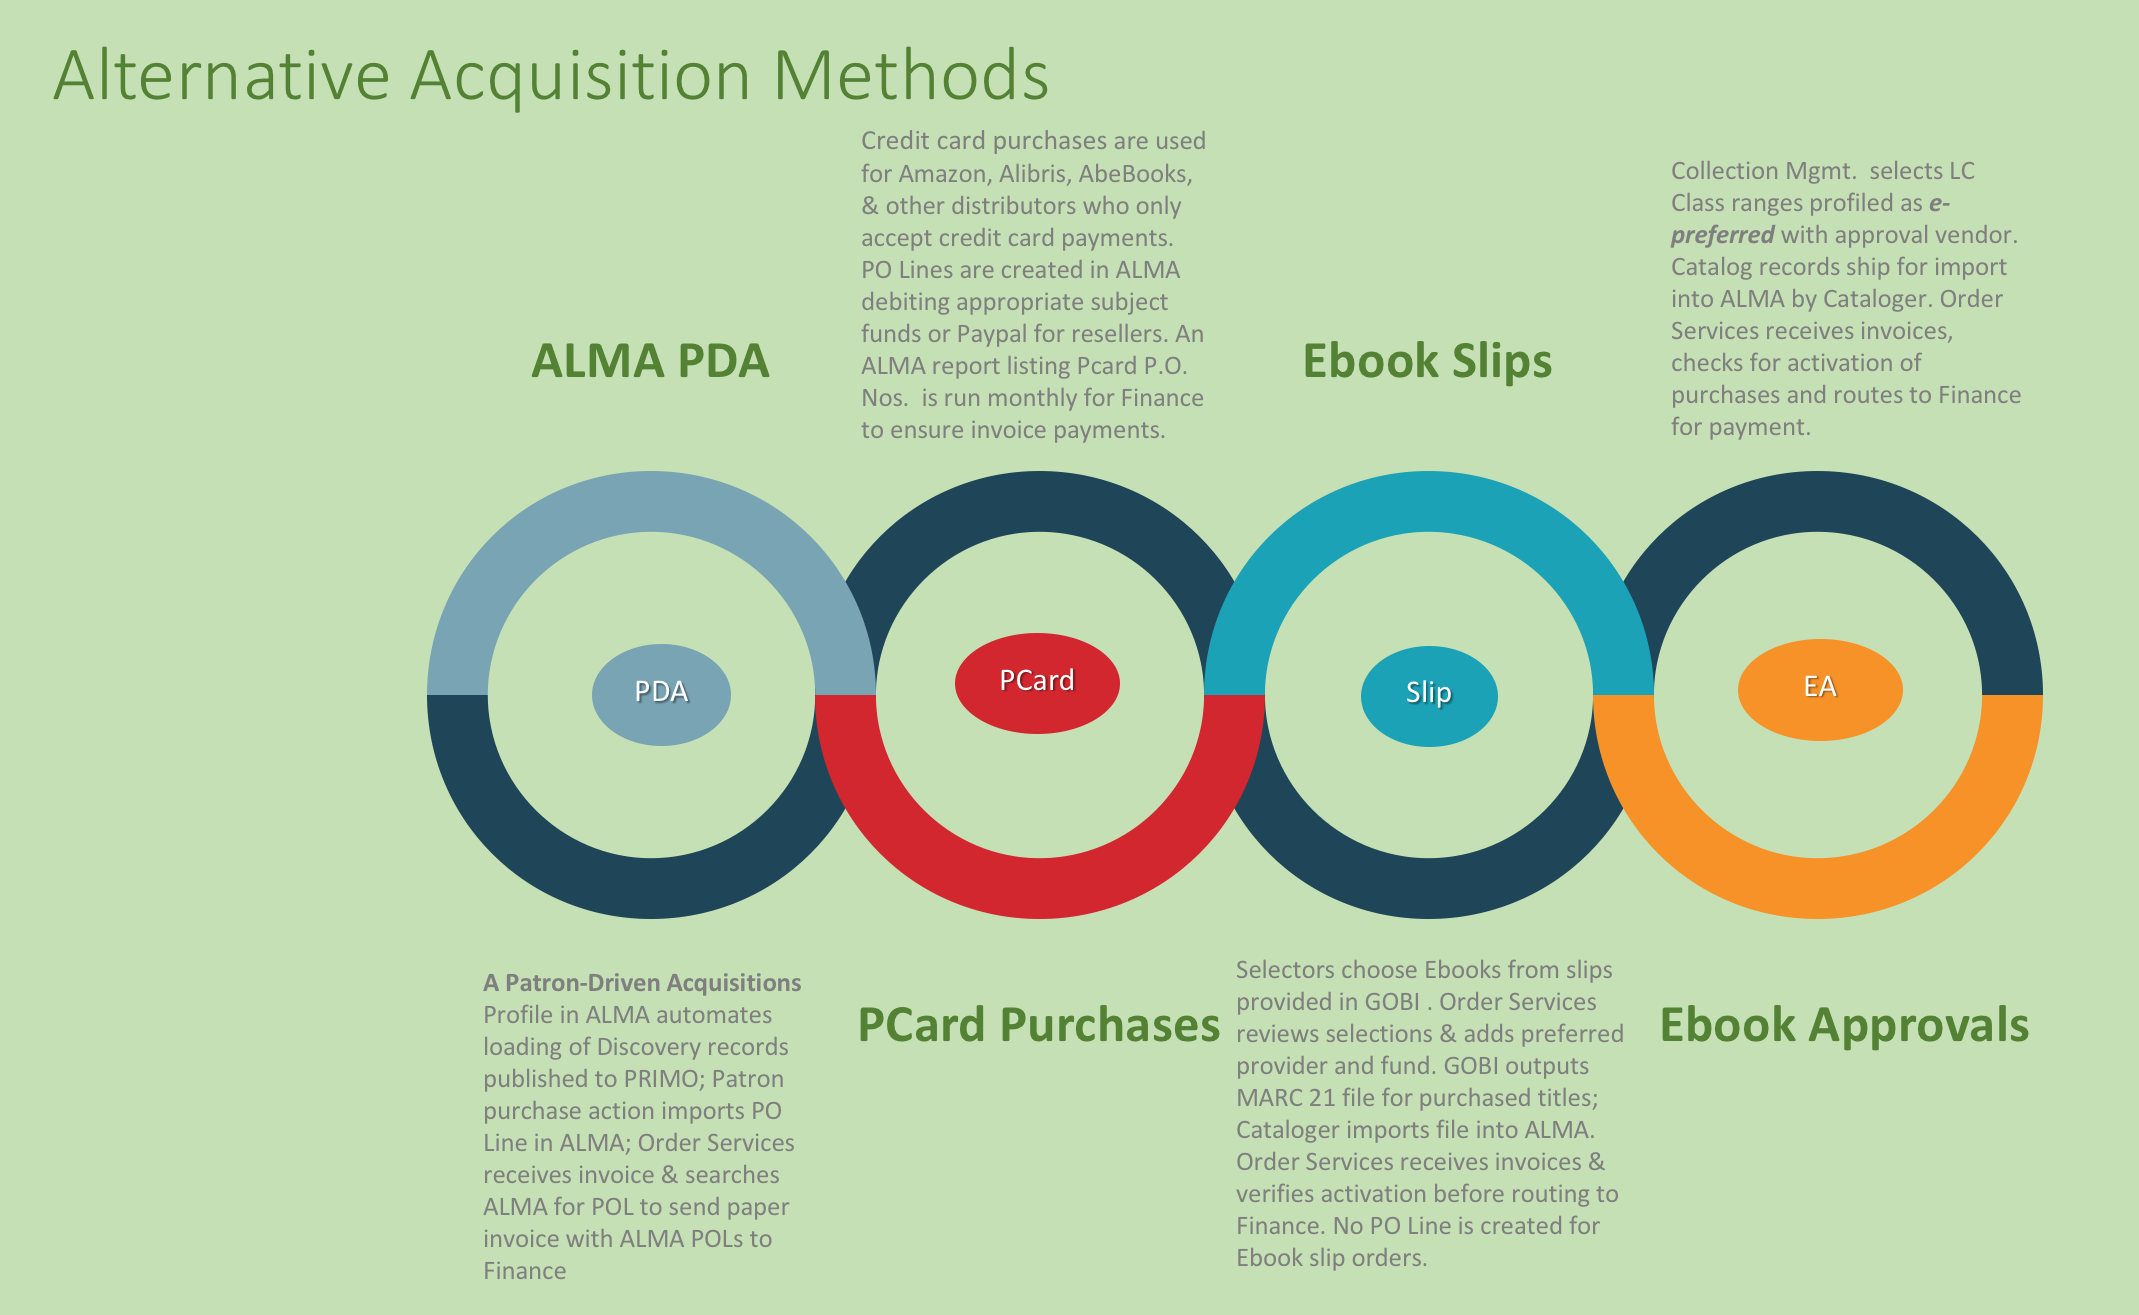 Alternative Acquisitions Methods including Patron Driven Acquisitions profiles, Credit Card purchasing, Ebook Slips plan provided by GOBI Solutions an Ebook Approval plan.